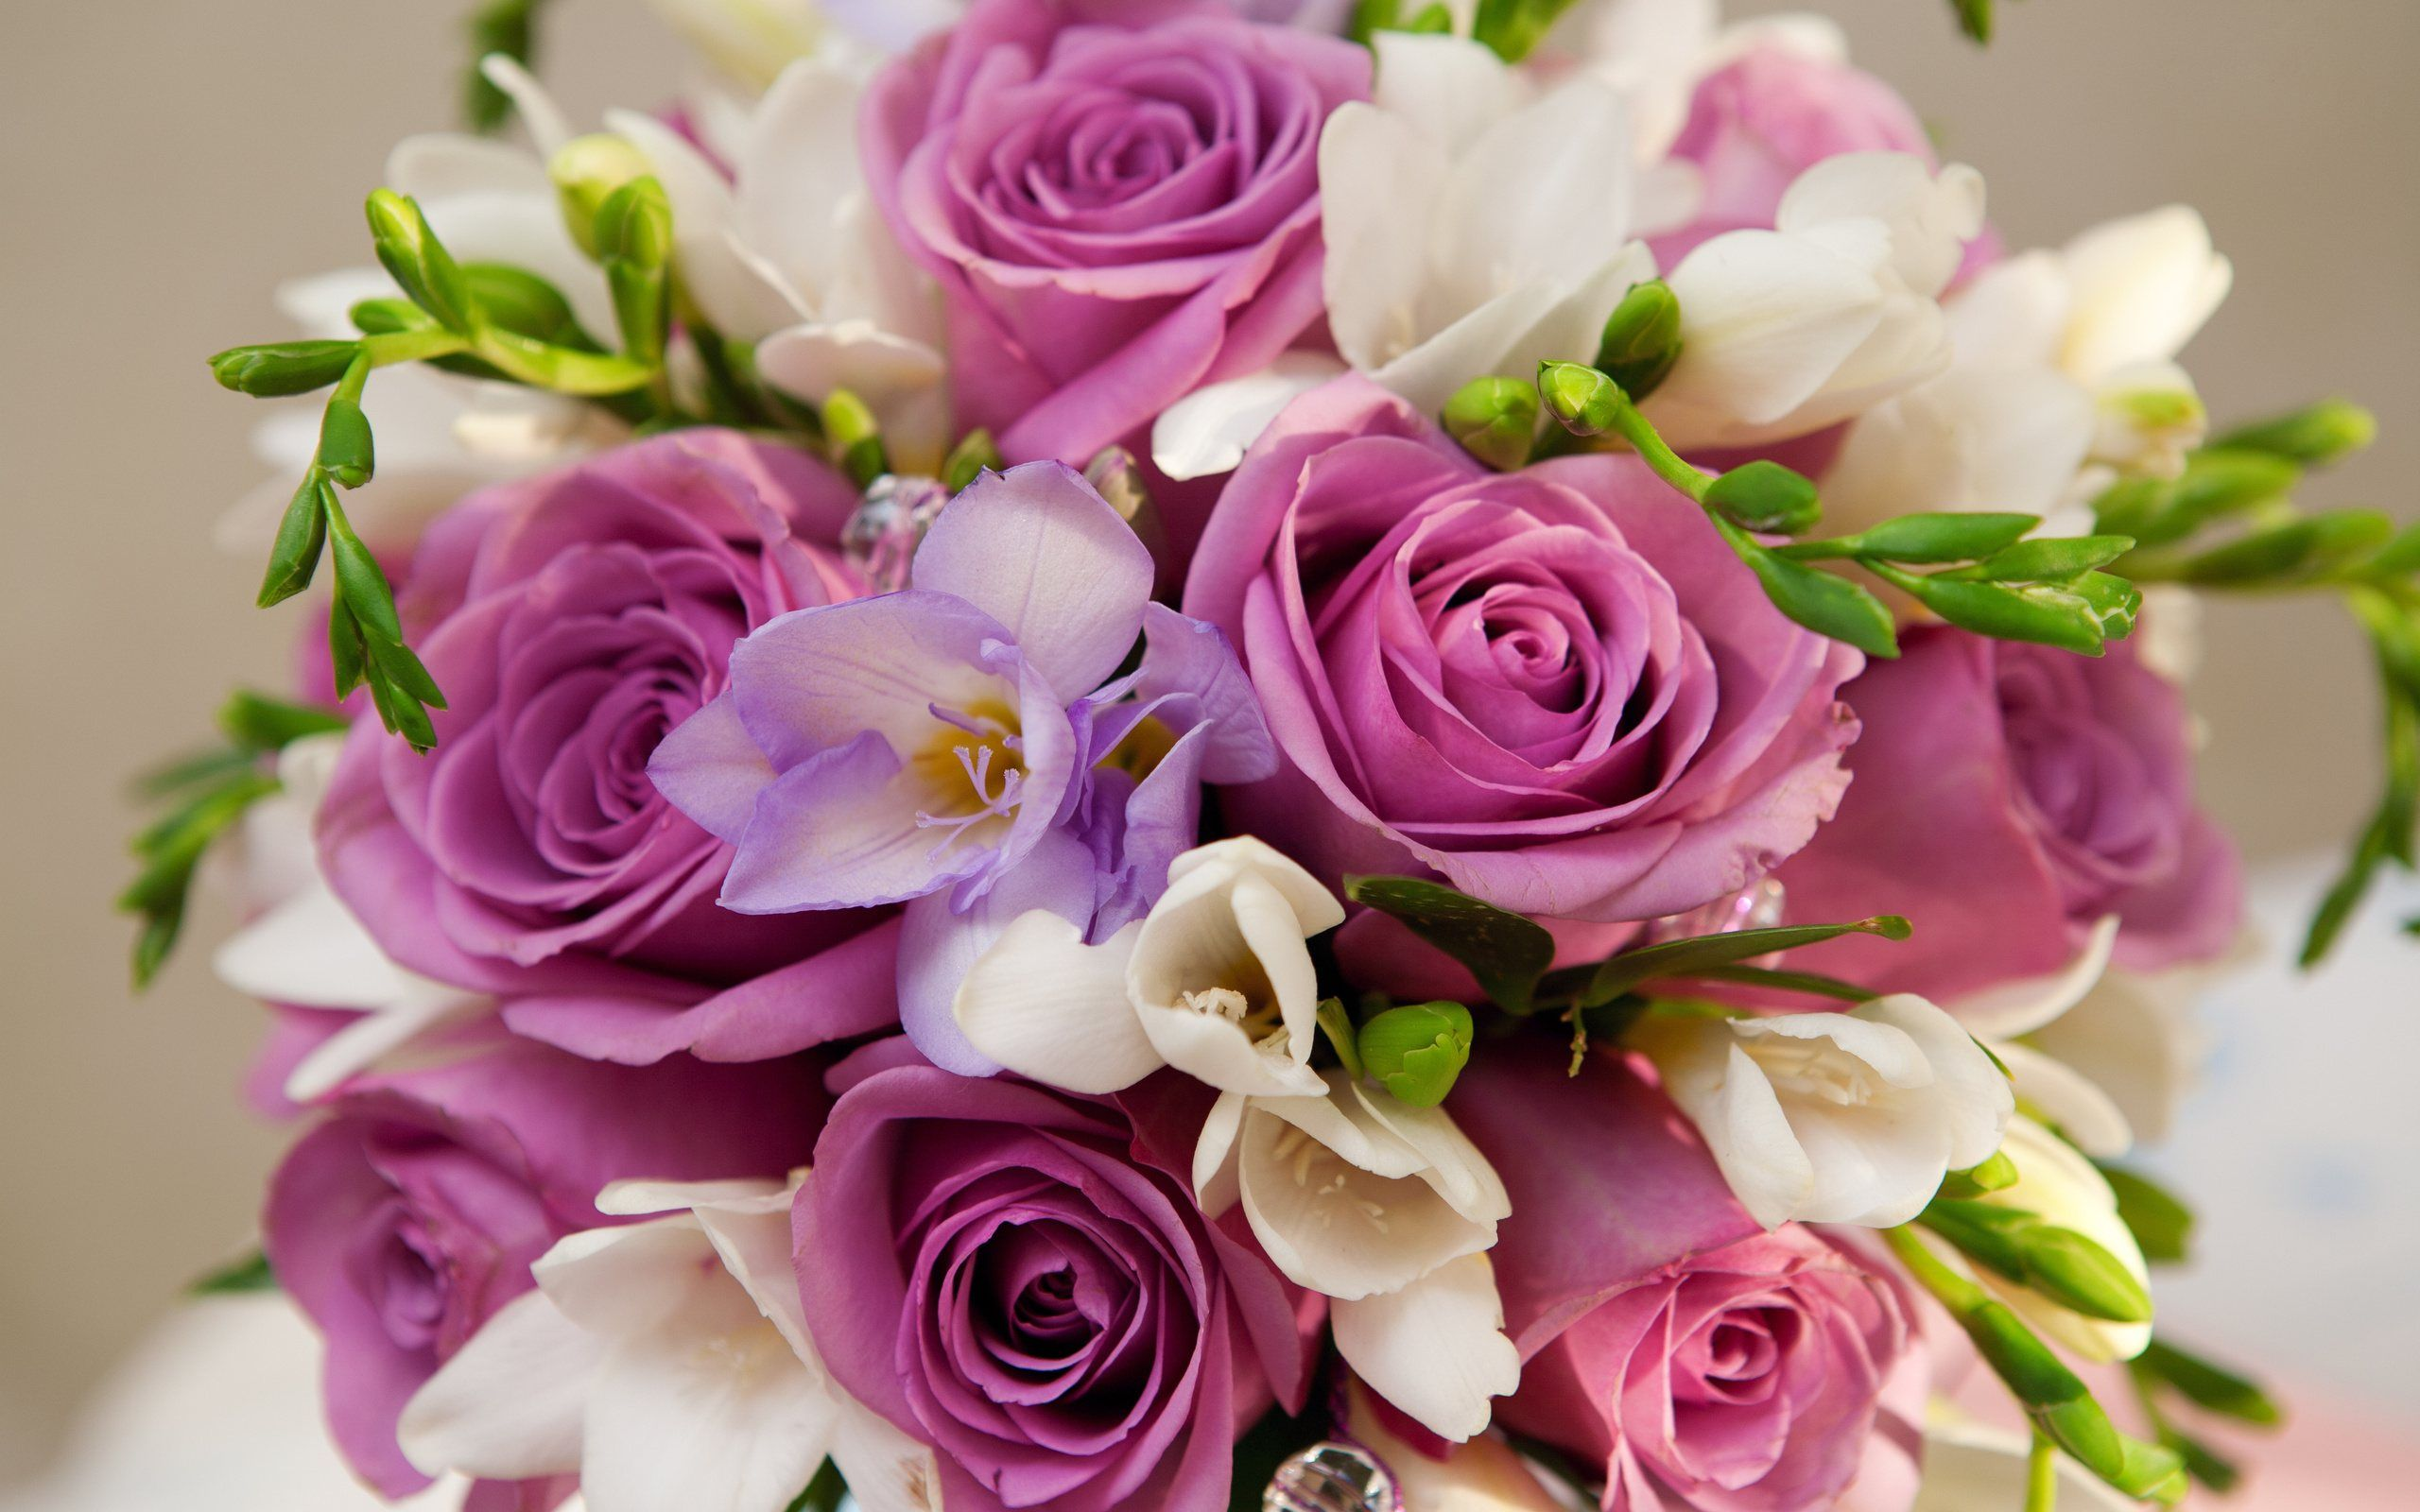 Lovely Pink Bouquets For Weddings | Flowers | Pinterest | Flowers ...